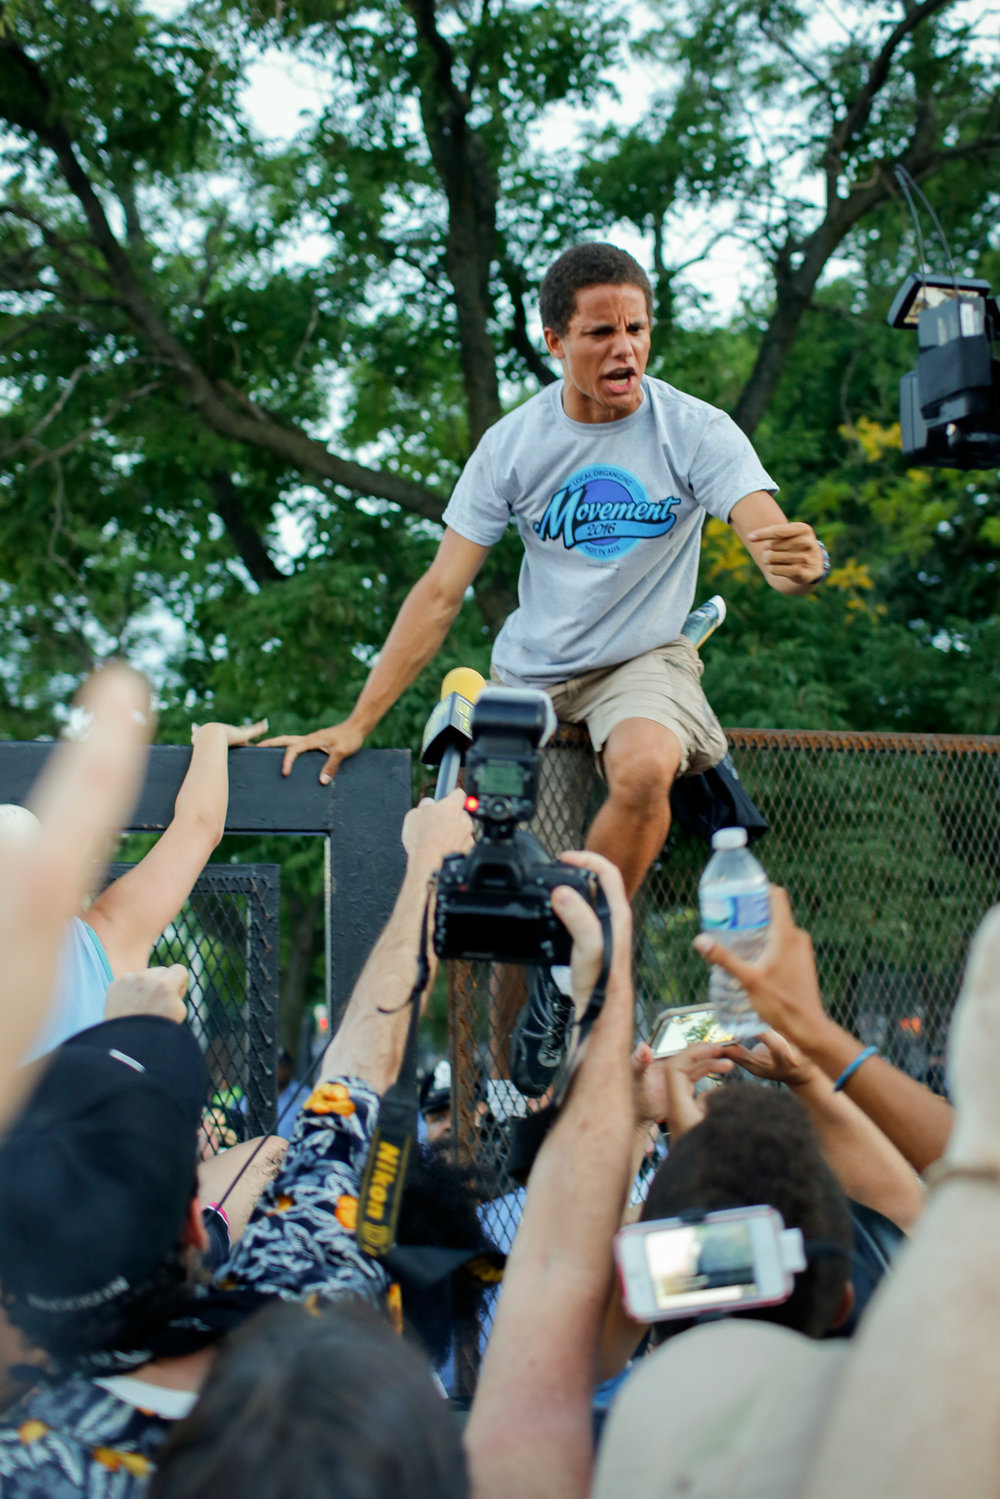 Demonstrator Climbs Barricade at 2016 DNC